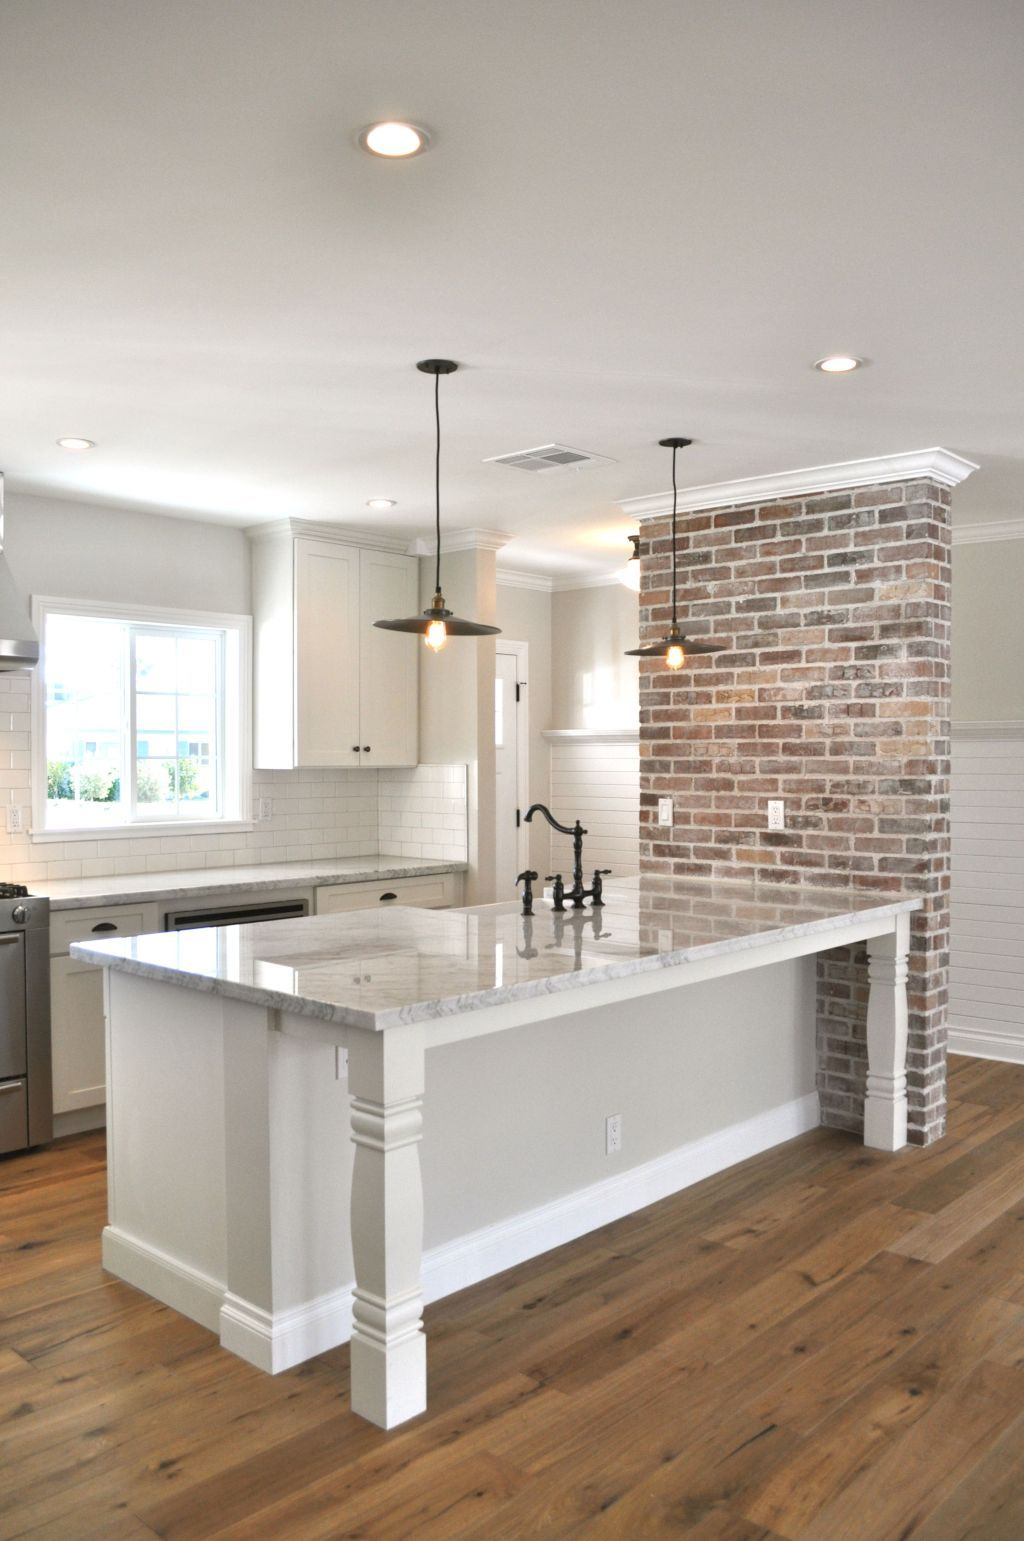 65 Awesome Kitchen Island Design and Decor Ideas | Home Sweet Home ...